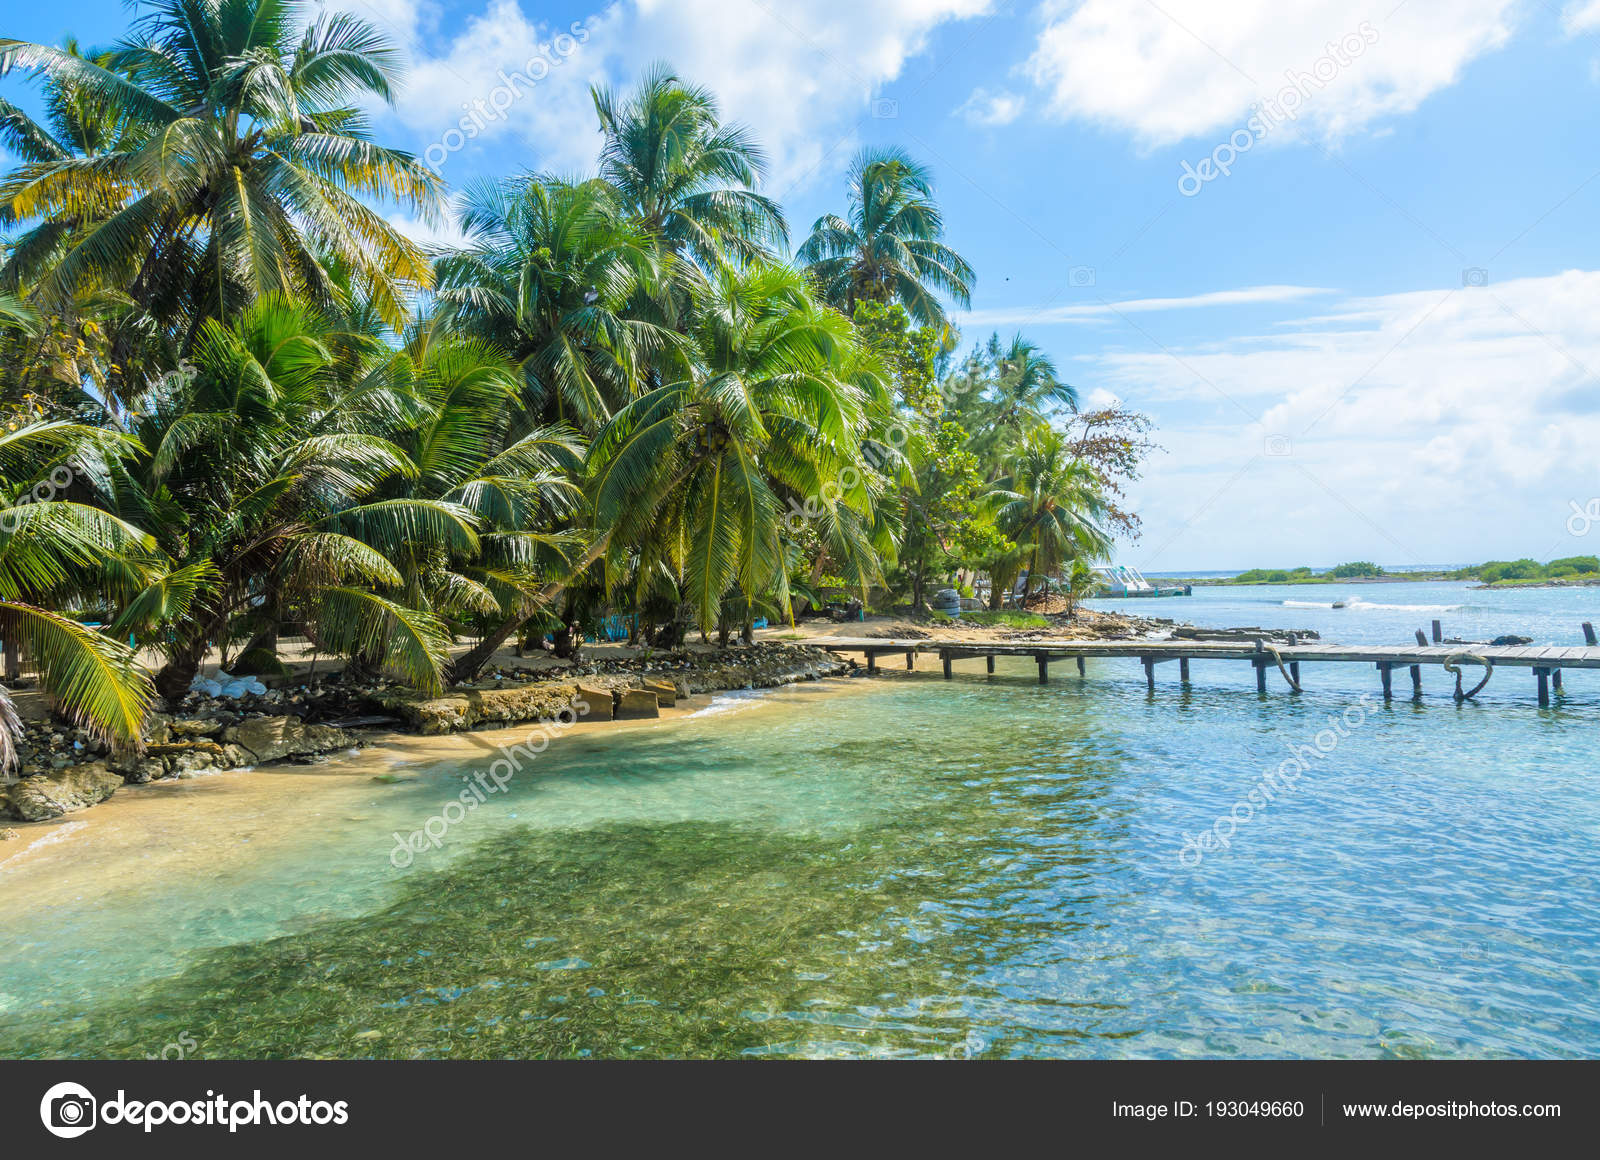 Tobacco Caye Wooden Pier Small Tropical Island Barrier Reef Paradise Stock Photo Image By C Simondannhauer 193049660